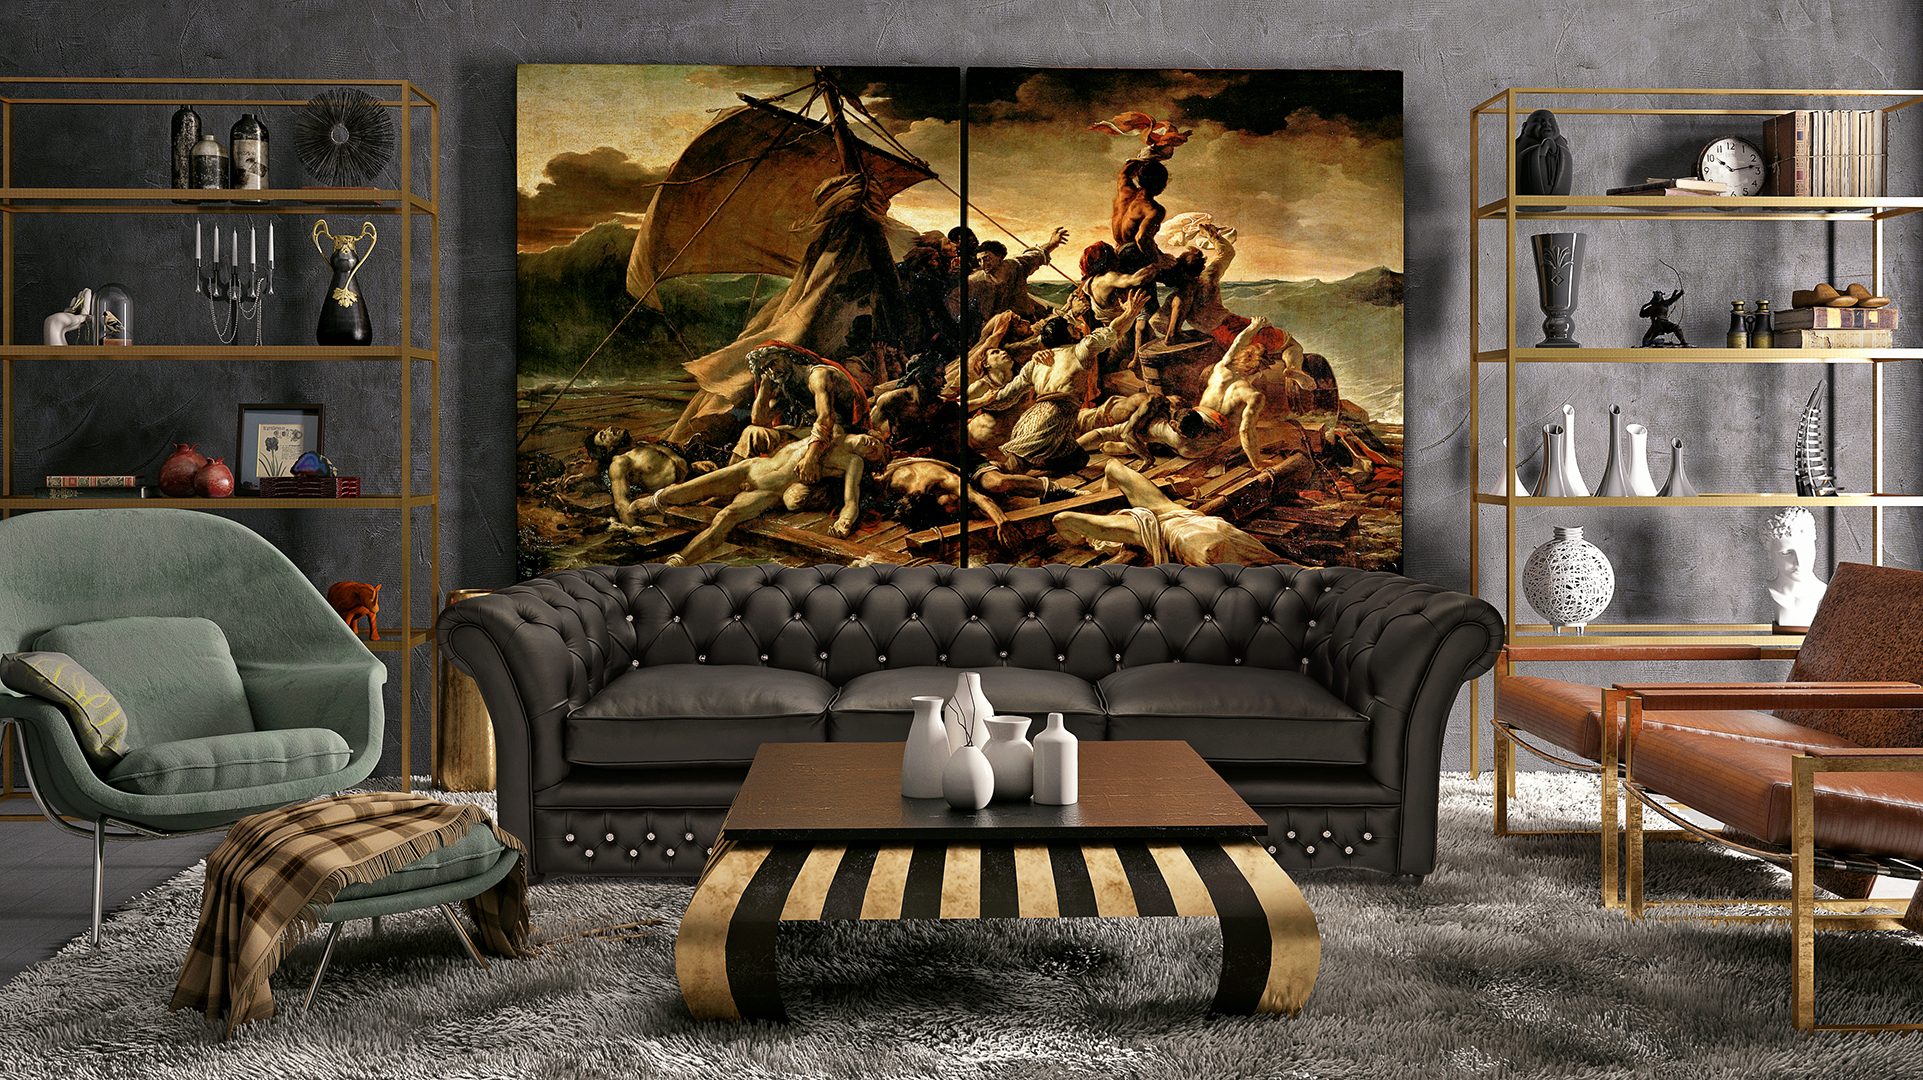 Chesterfield sofa montage in a room with a big painting The Raft of the Medusa